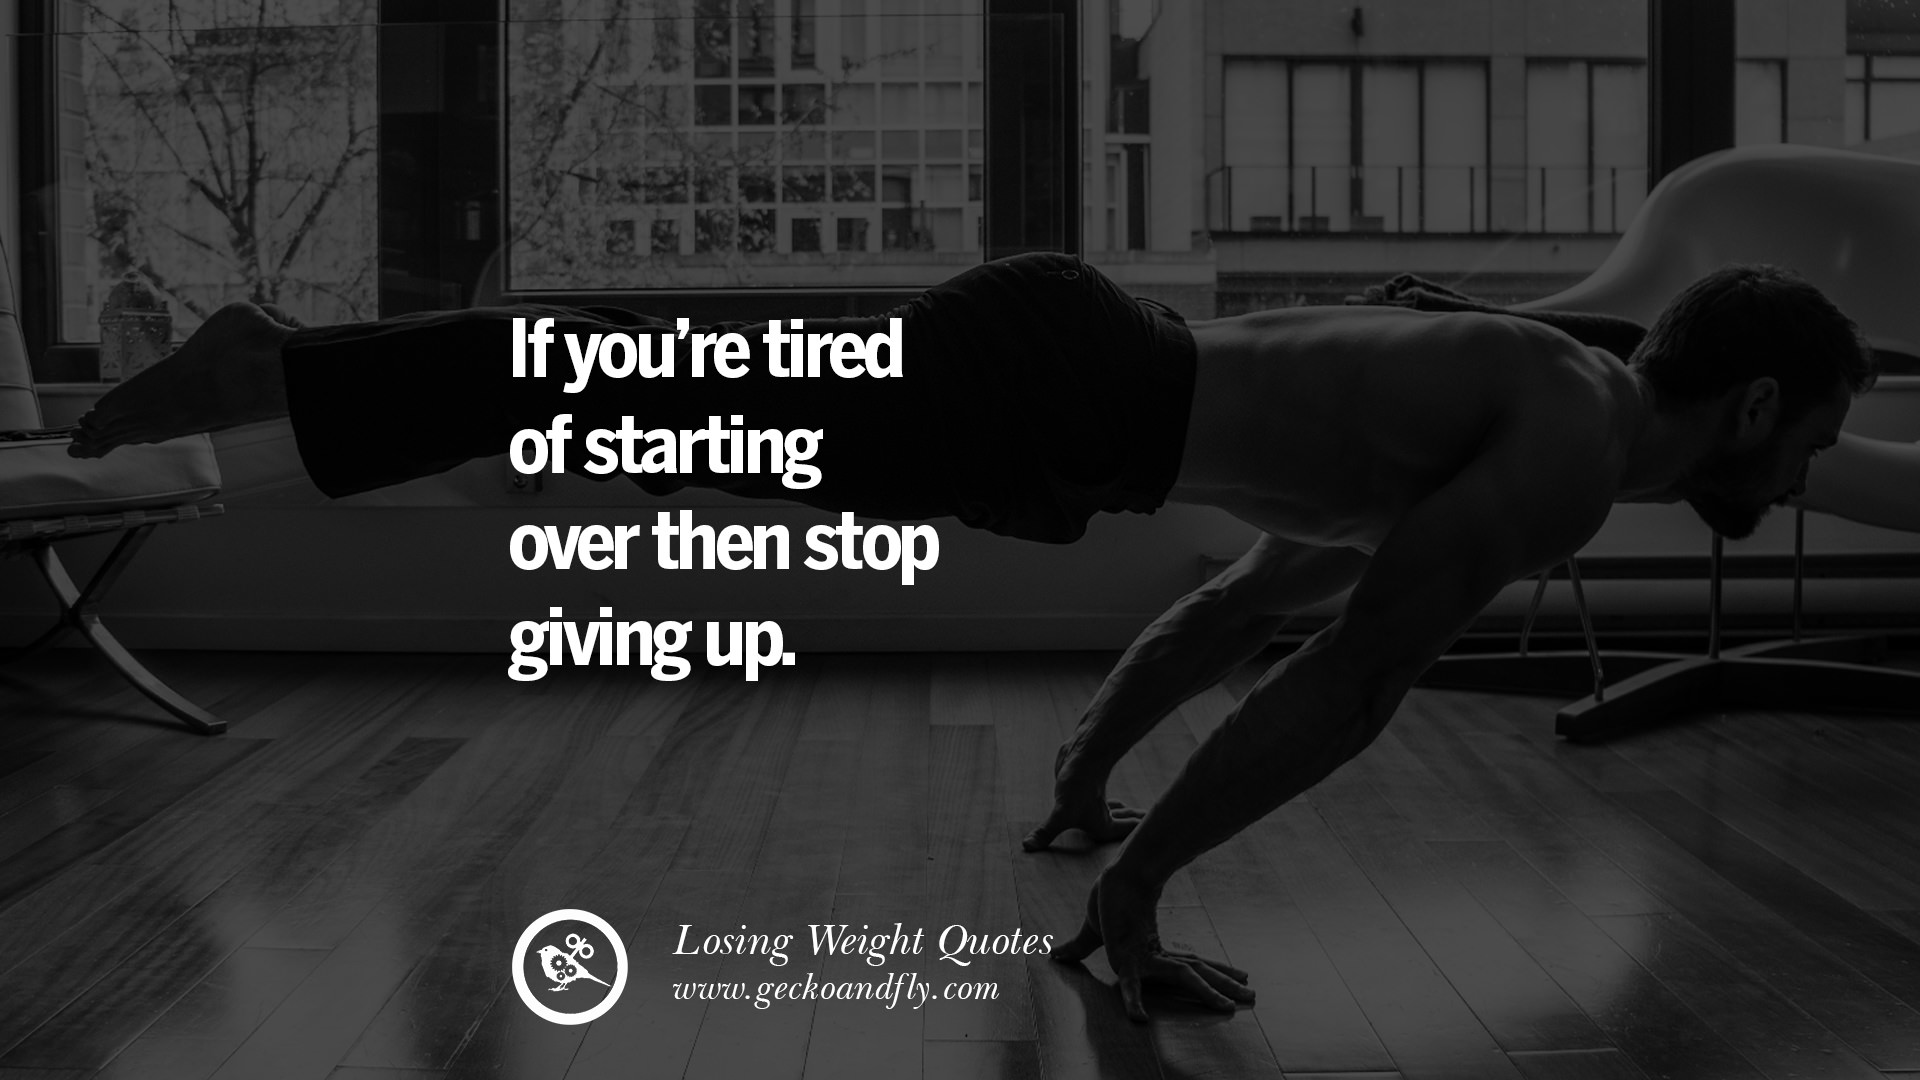 40 Motivational Quotes On Losing Weight On Diet And Never Giving Up